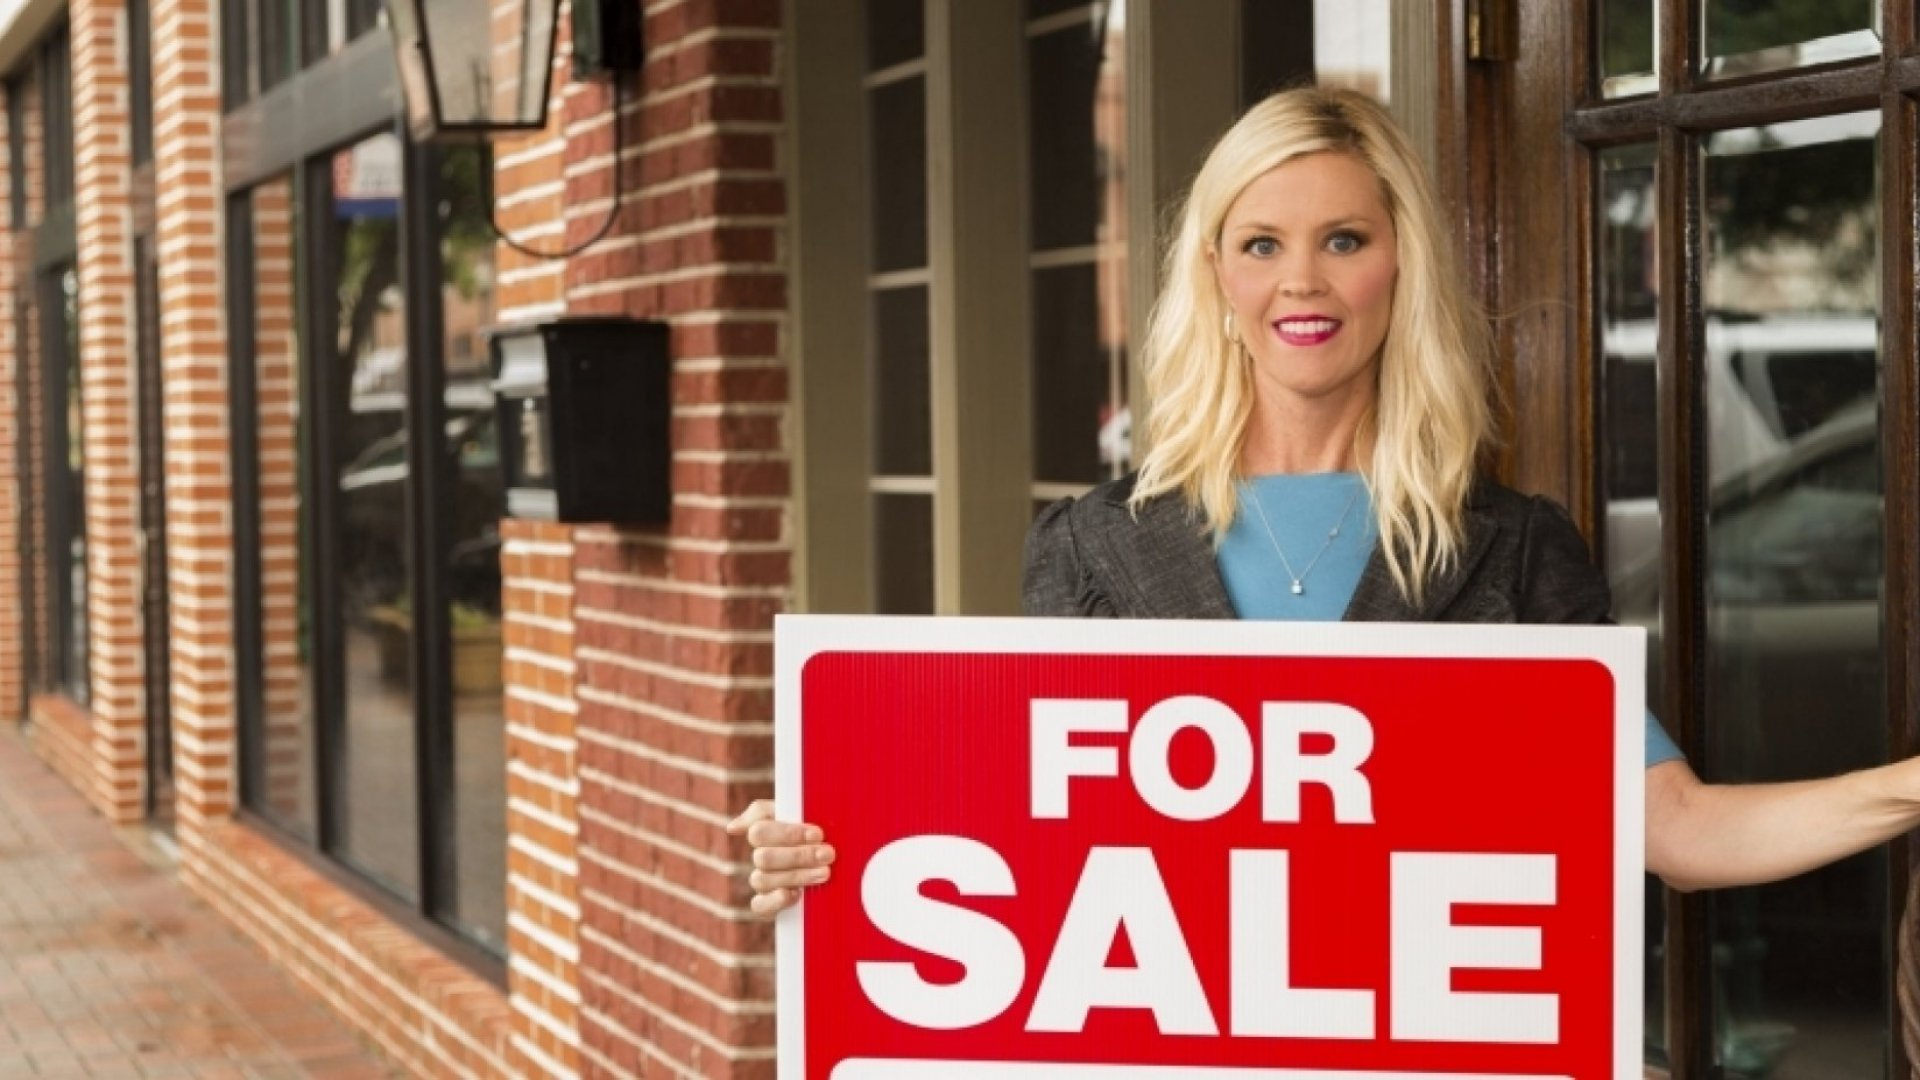 Why Small Business Sales Stabilized in 2015, And How 2016 Could Change That